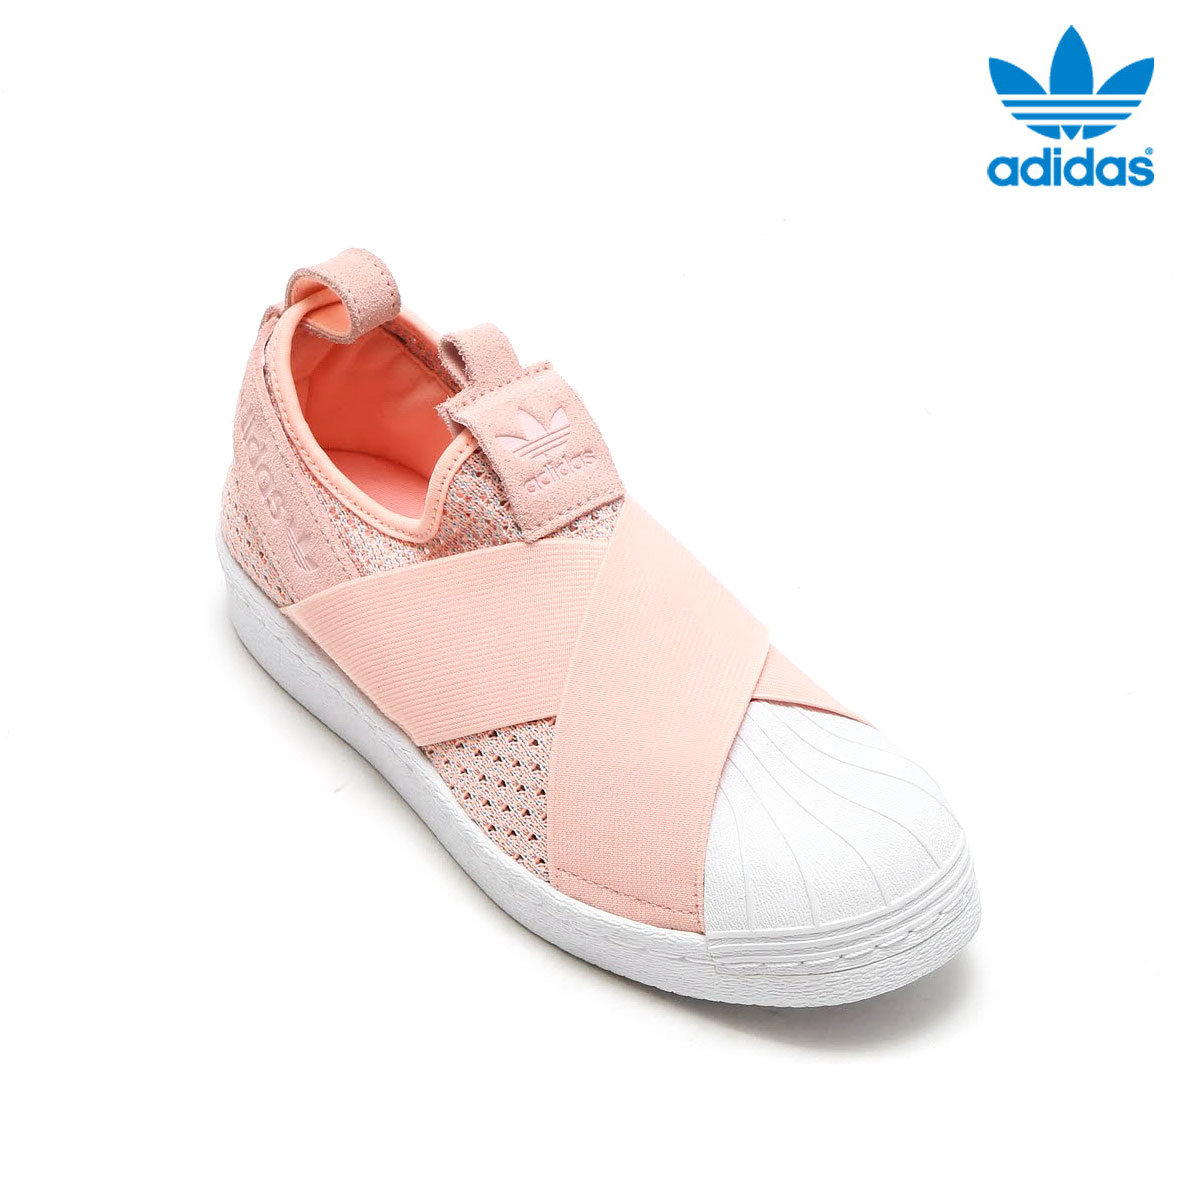 8a7a5015dd3b42 adidas Originals SUPERSTAR SlipOn W (Adidas superstar slip-on W) (Haze  Coral S17 Haze Coral S17 Off White)